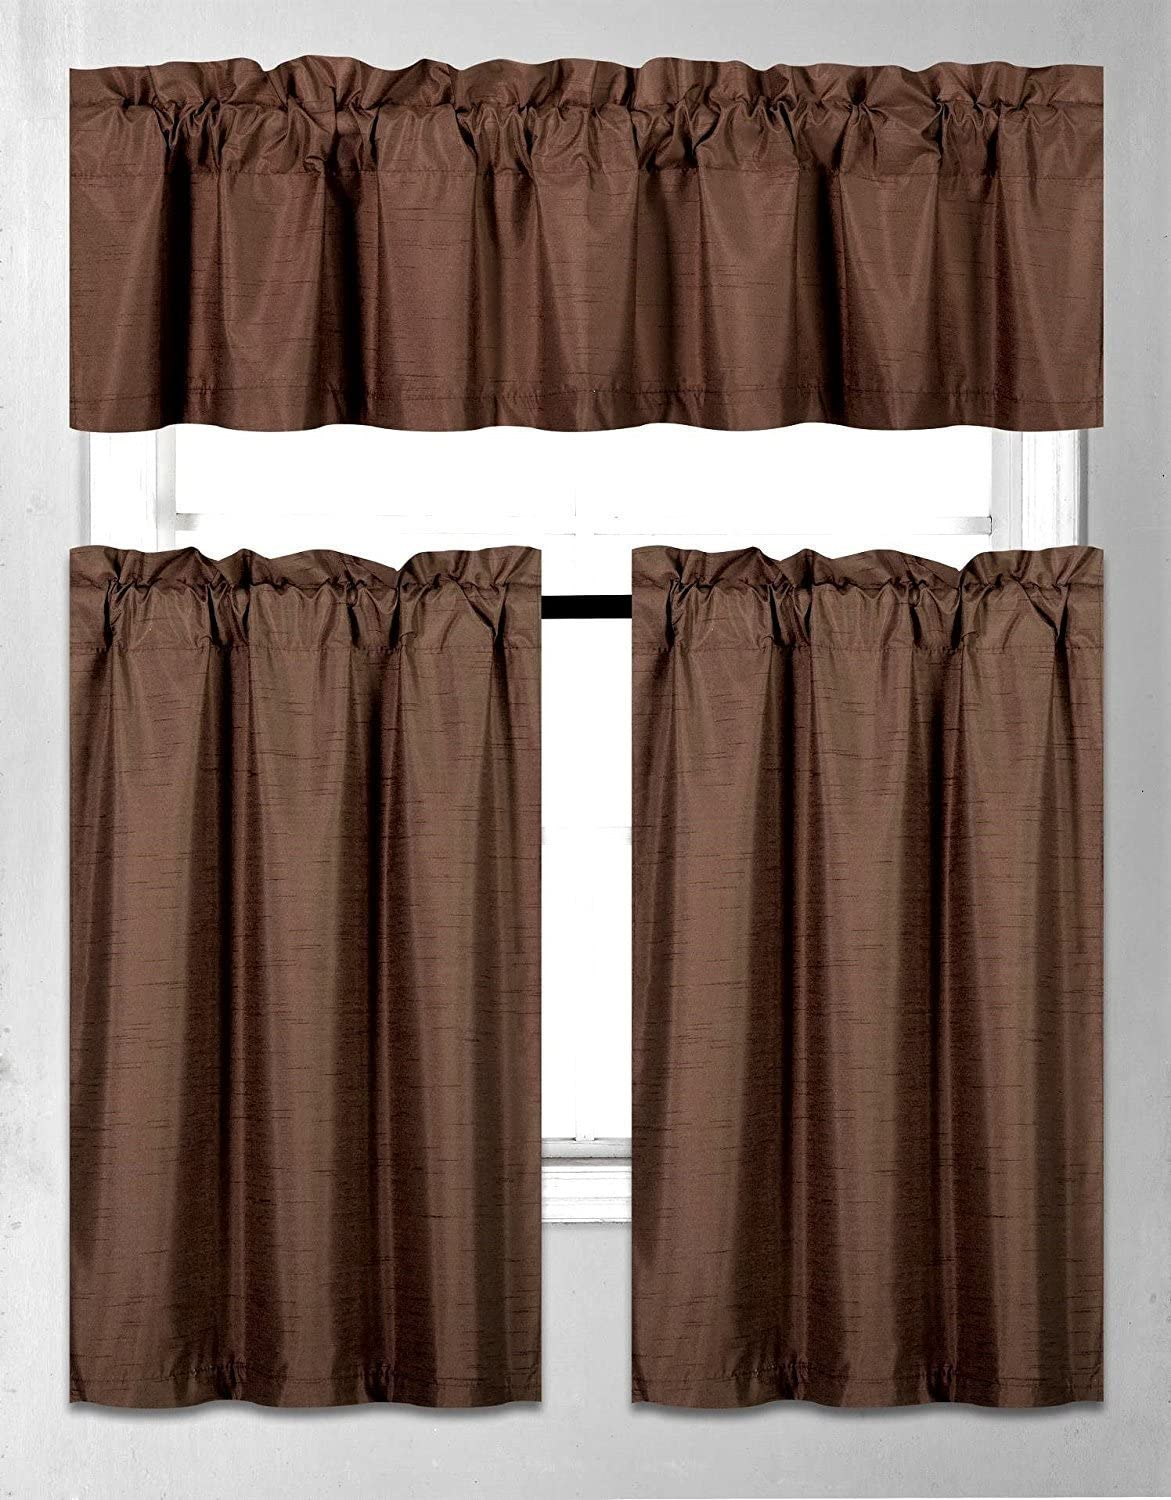 Fancy Collection 3 Pieces Faux Silk Blackout Kitchen Curtain Set Tier Curtains And Valance Set Solid Brown Chocolate Window Set Thermal Backing Drapes New Home Kitchen